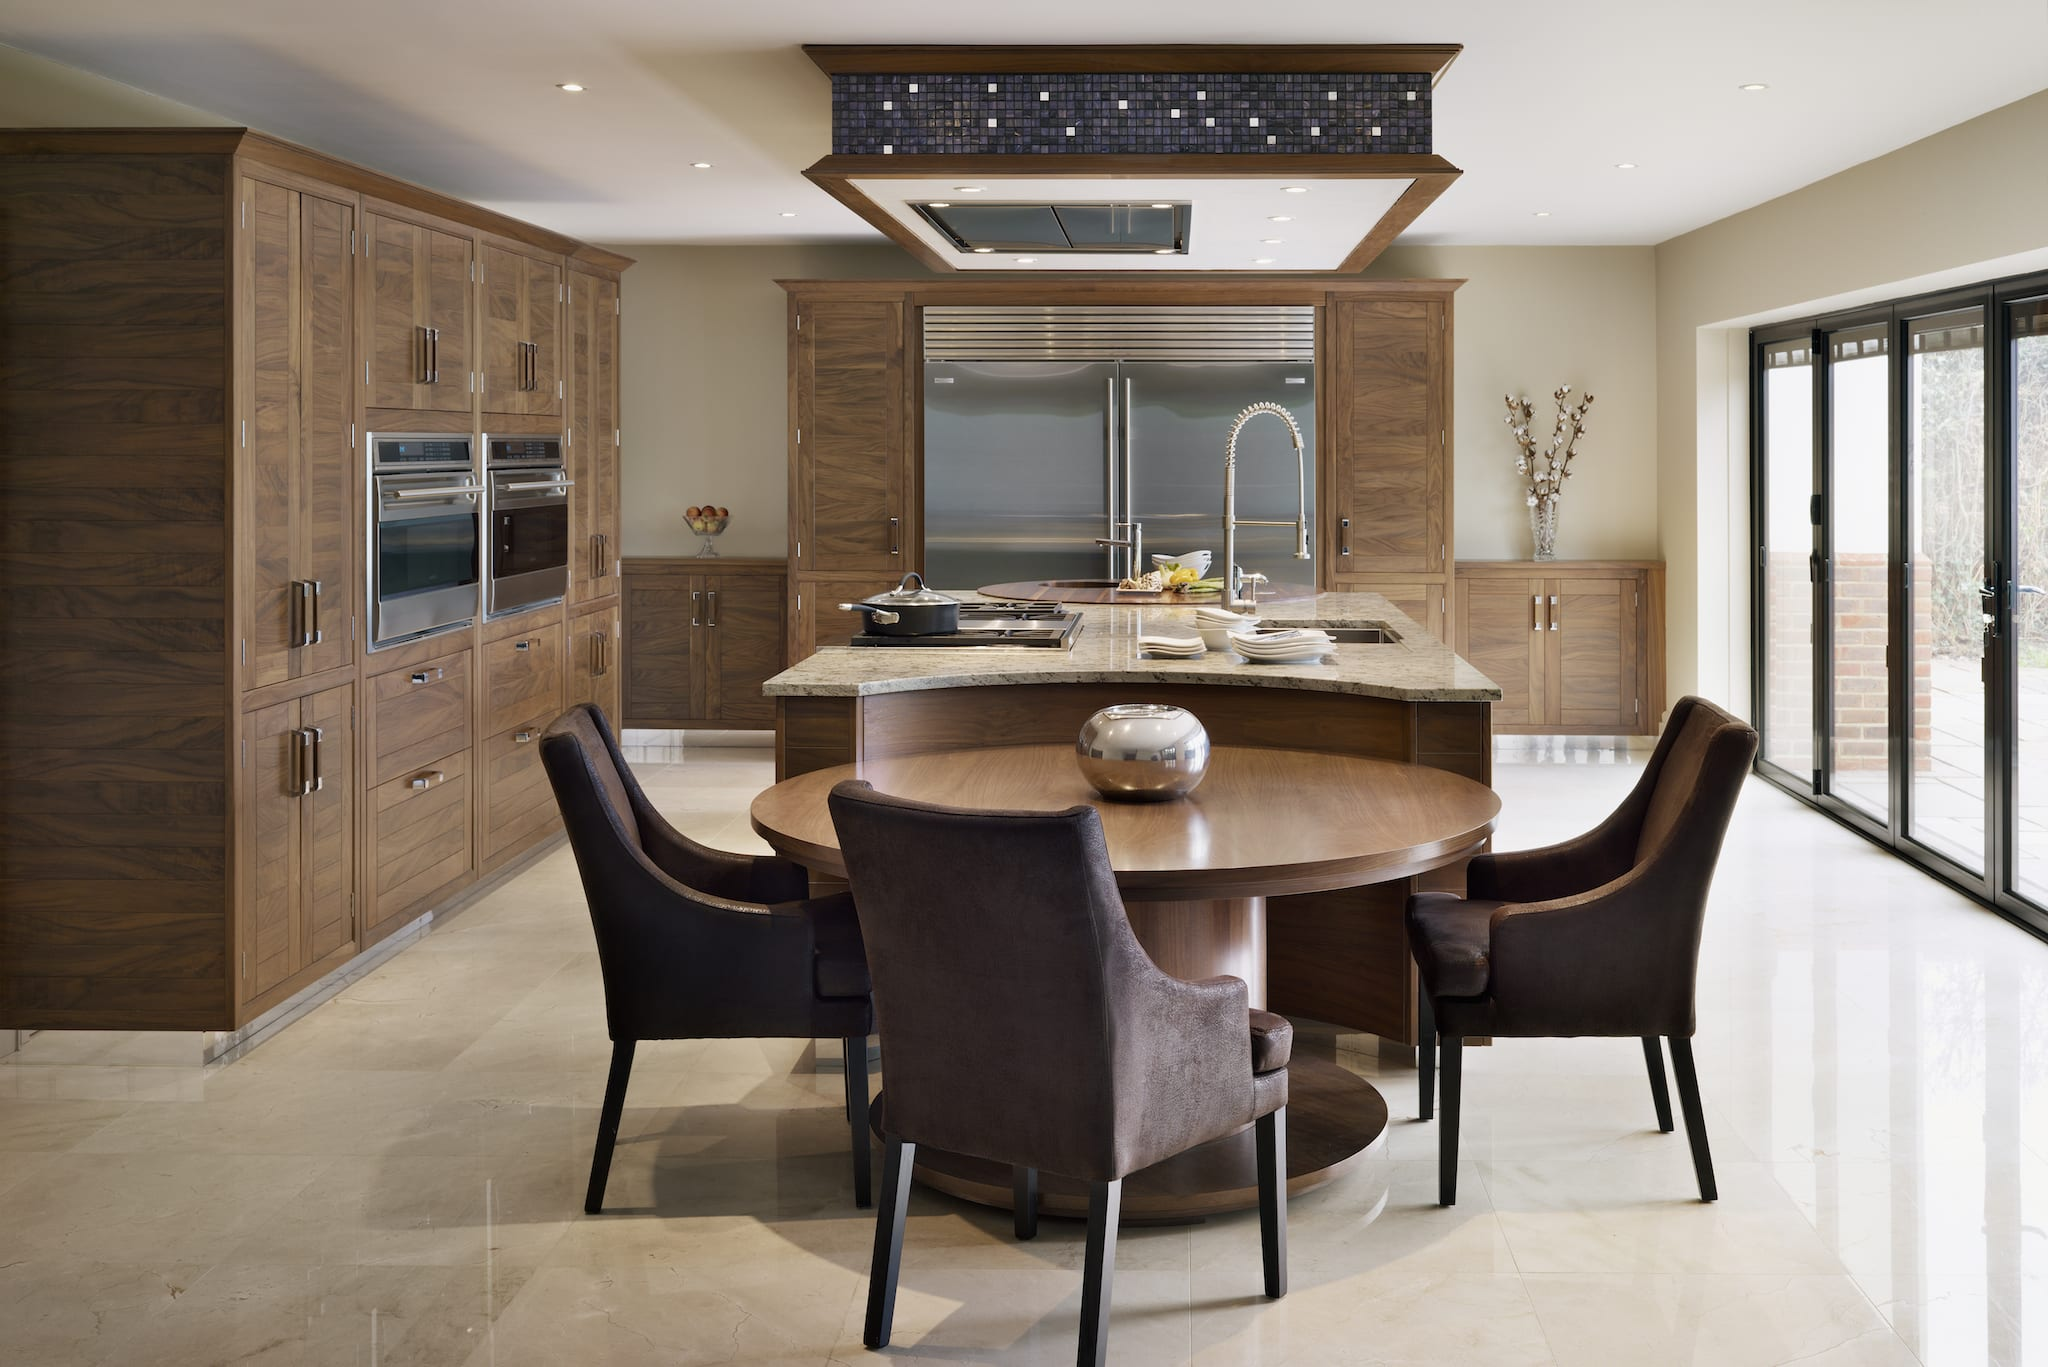 Wood: Choosing the Perfect Wood for your Kitchen on oak art, oak golf, oak clothing, oak furniture, oak restaurant, oak paint,